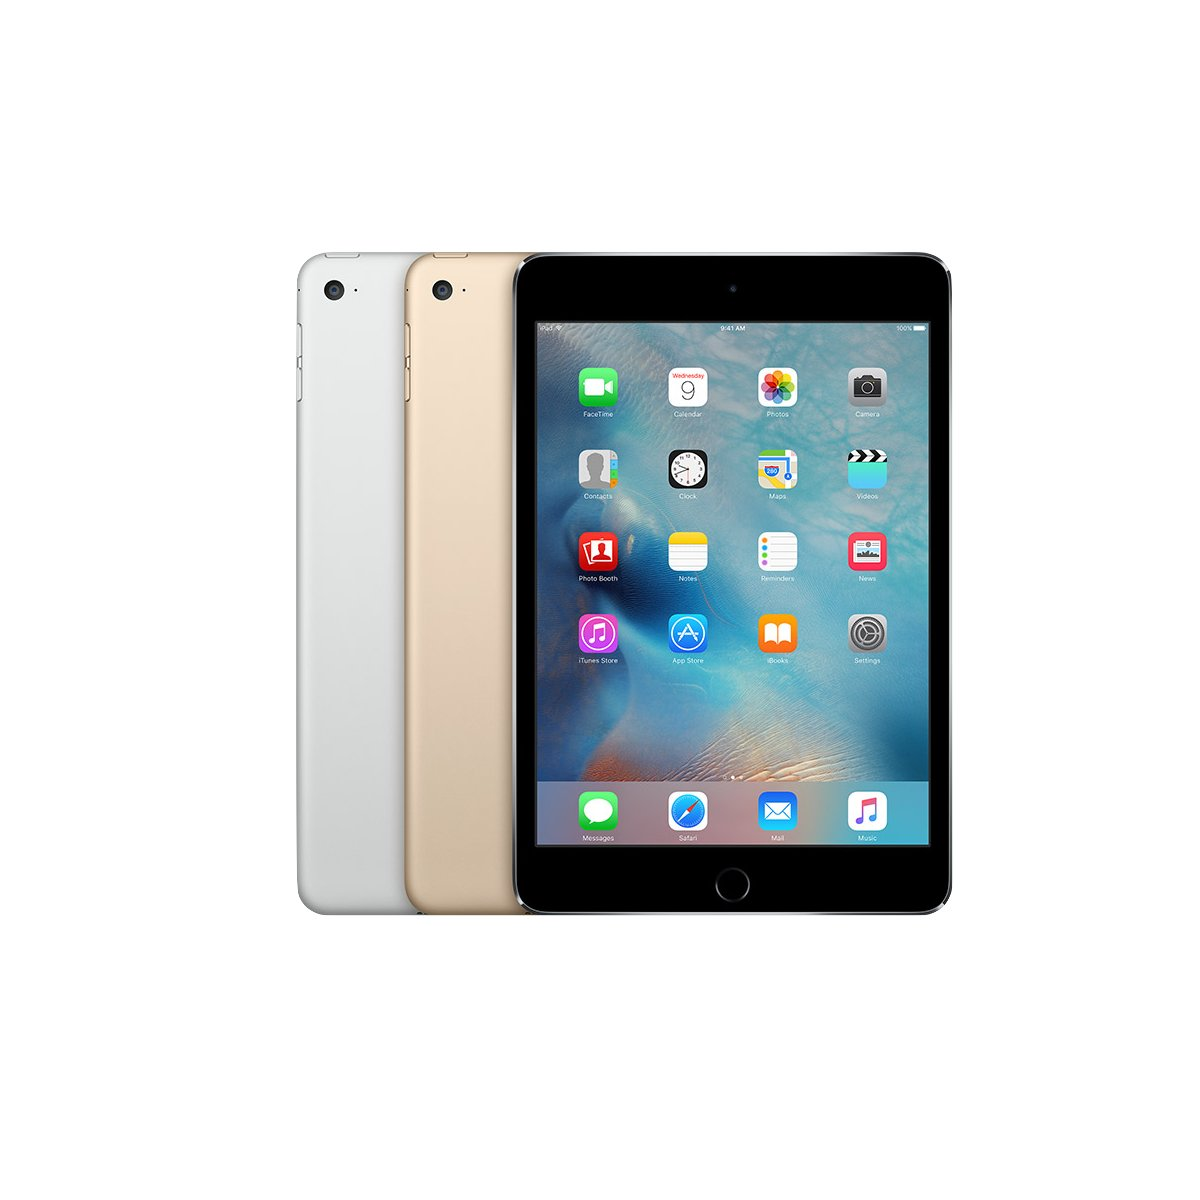 Apple iPad Mini 4 (2015) 128 GB